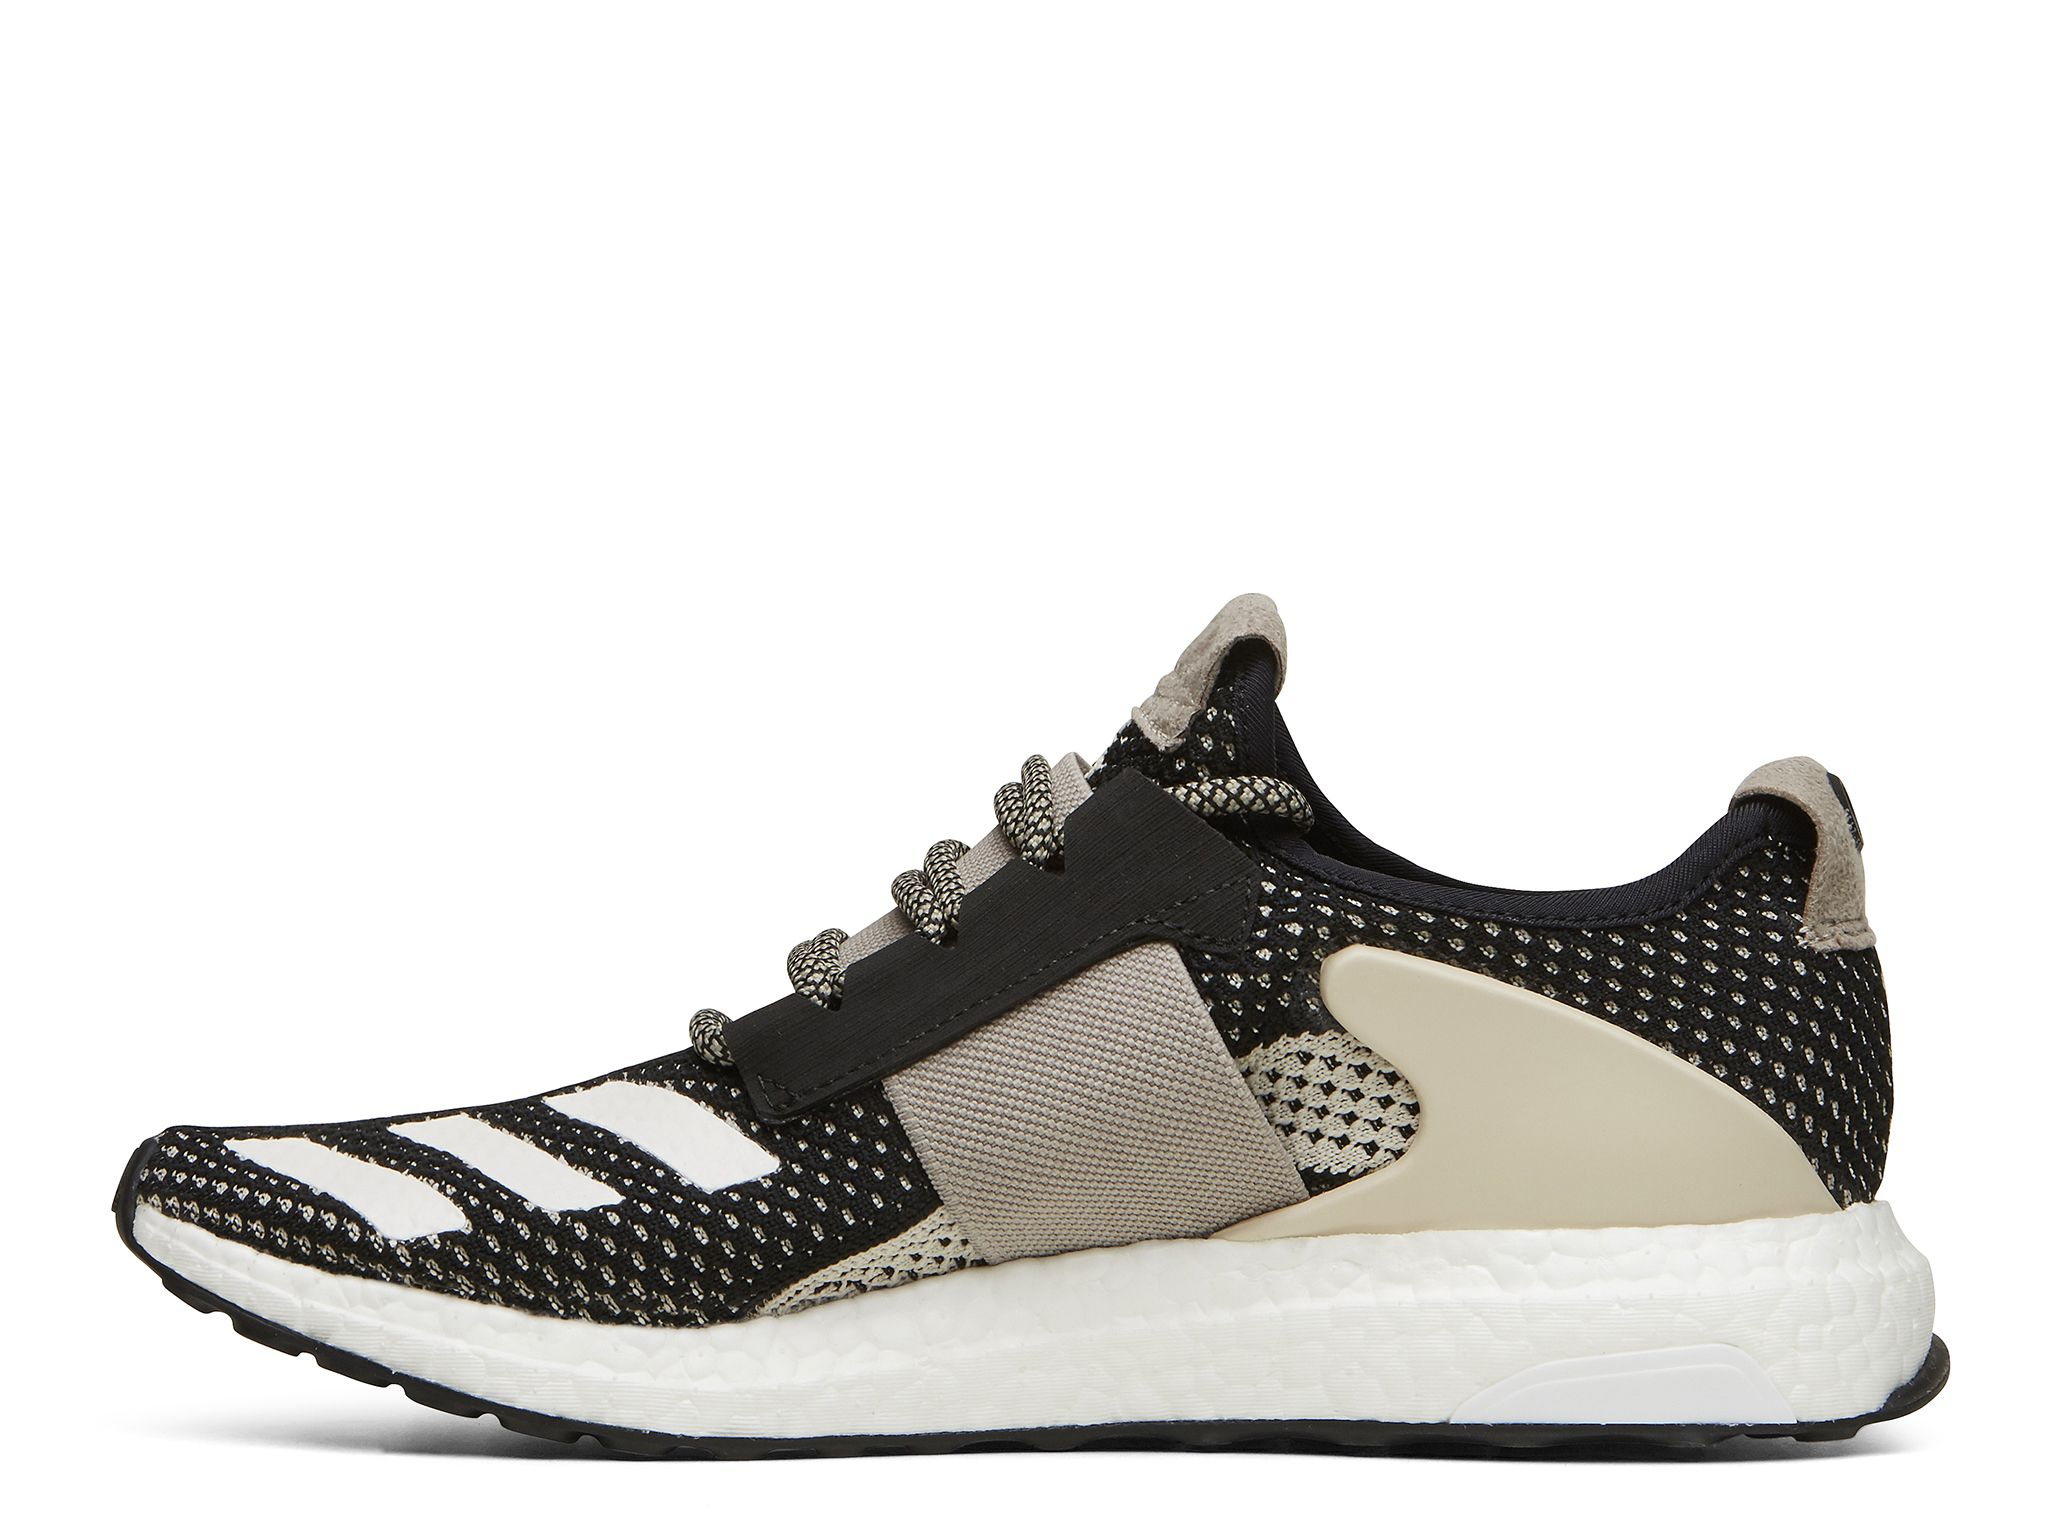 0d15dfa2a4 Adidas Day One Running Ultraboost ZG - Sneakerboy | Shoes Şakir likes